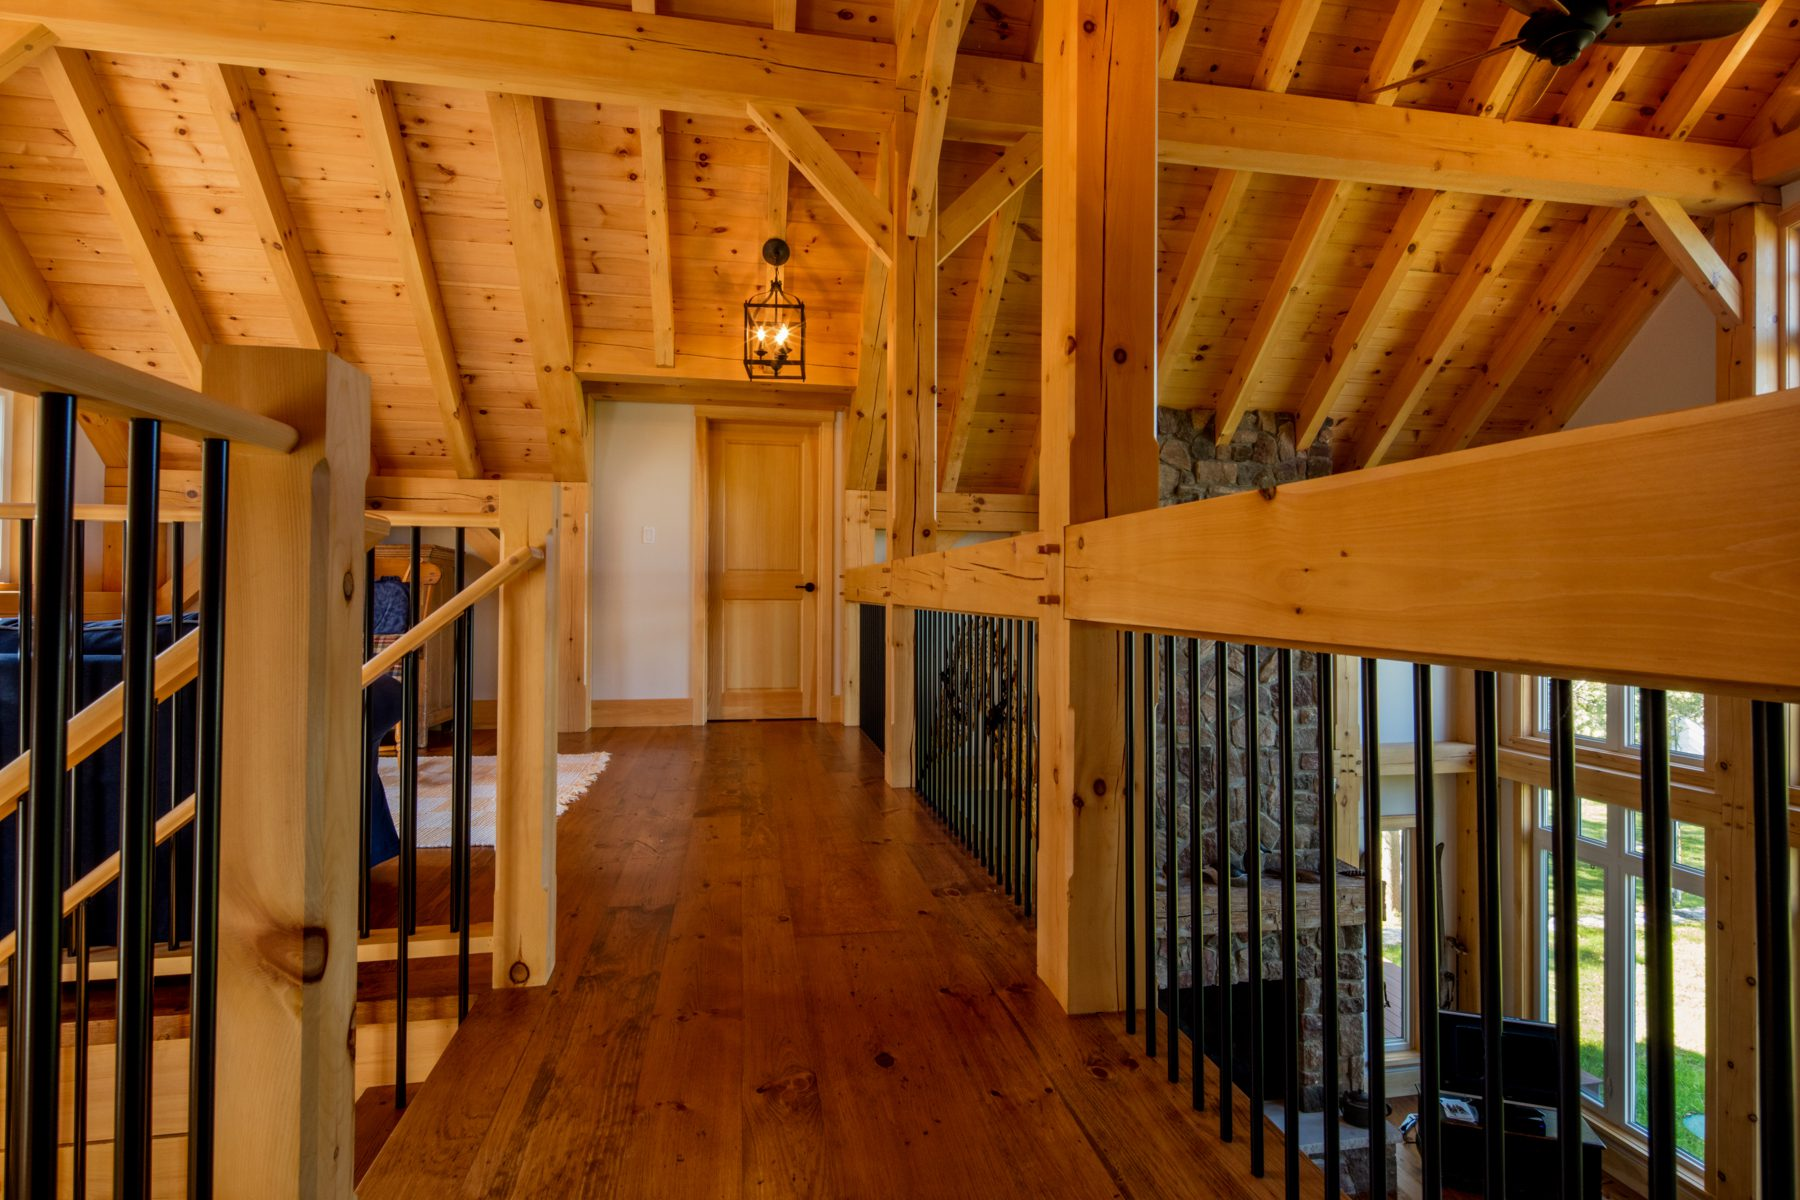 Normerica Timber Frame, Interior, Cottage, Hallway, Stairs, Cathedral Ceiling